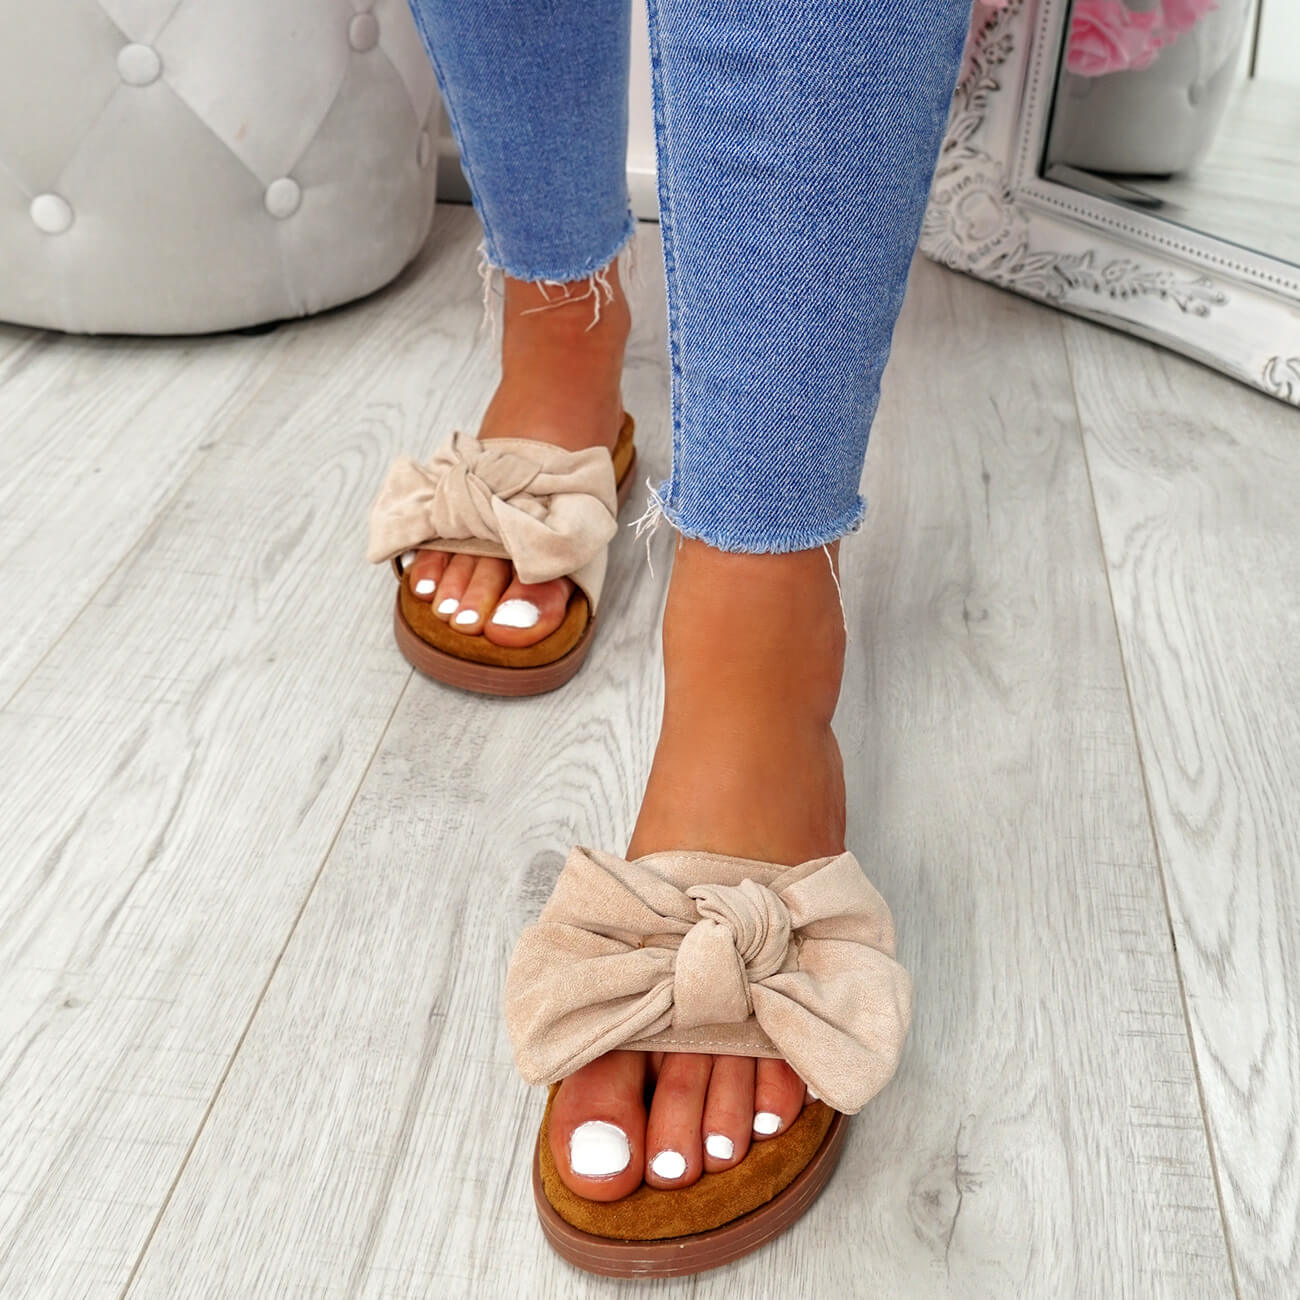 WOMENS-LADIES-FLAT-SANDALS-FRONT-BOW-COMFY-SUMMER-CASUAL-HOLIDAY-SHOES-SIZE-UK thumbnail 7